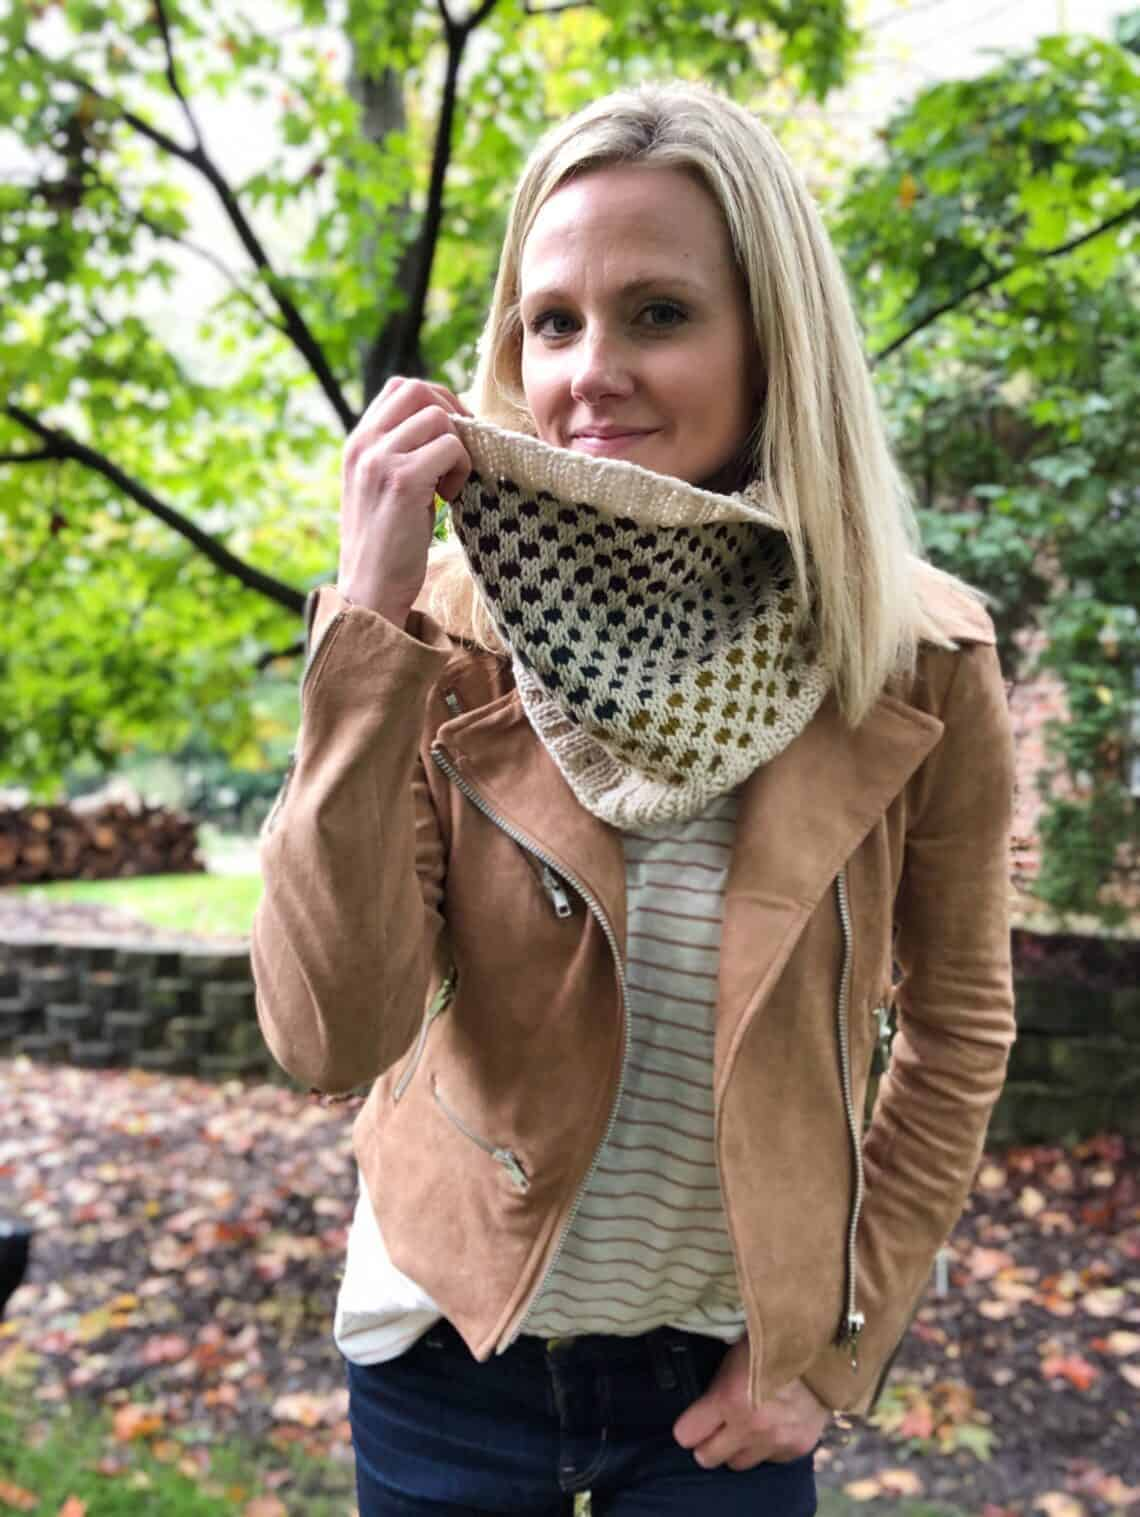 Beginner Colorwork knitting pattern using mosaic knitting and colorblocking. On trend for fall 2019.